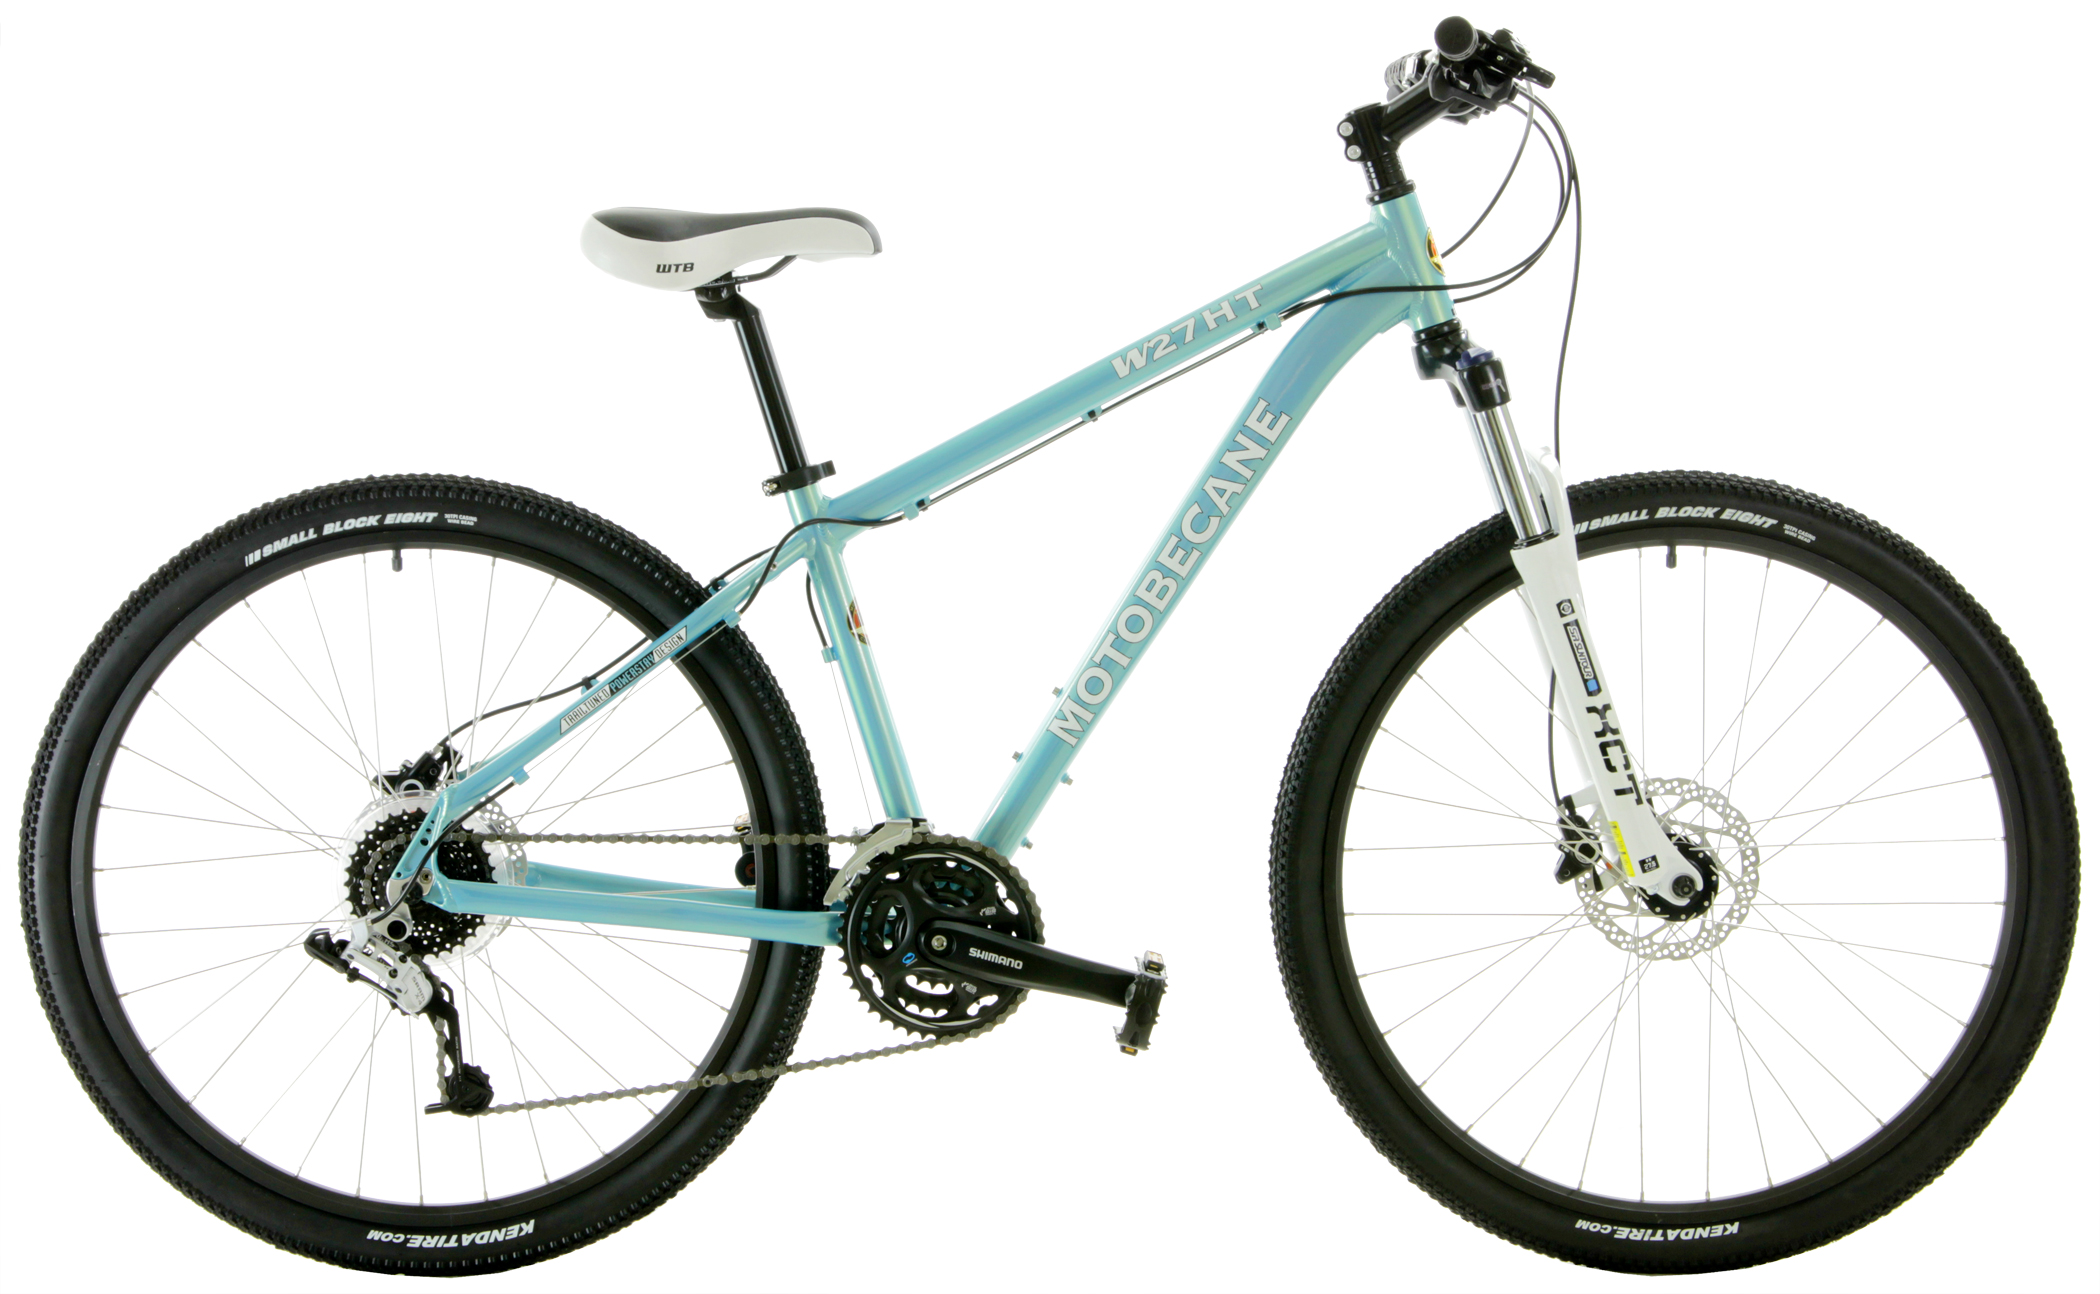 W27HT COMP - WOMEN'S ALUMINUM SHIMANO ATB w/ DISC BRAKES